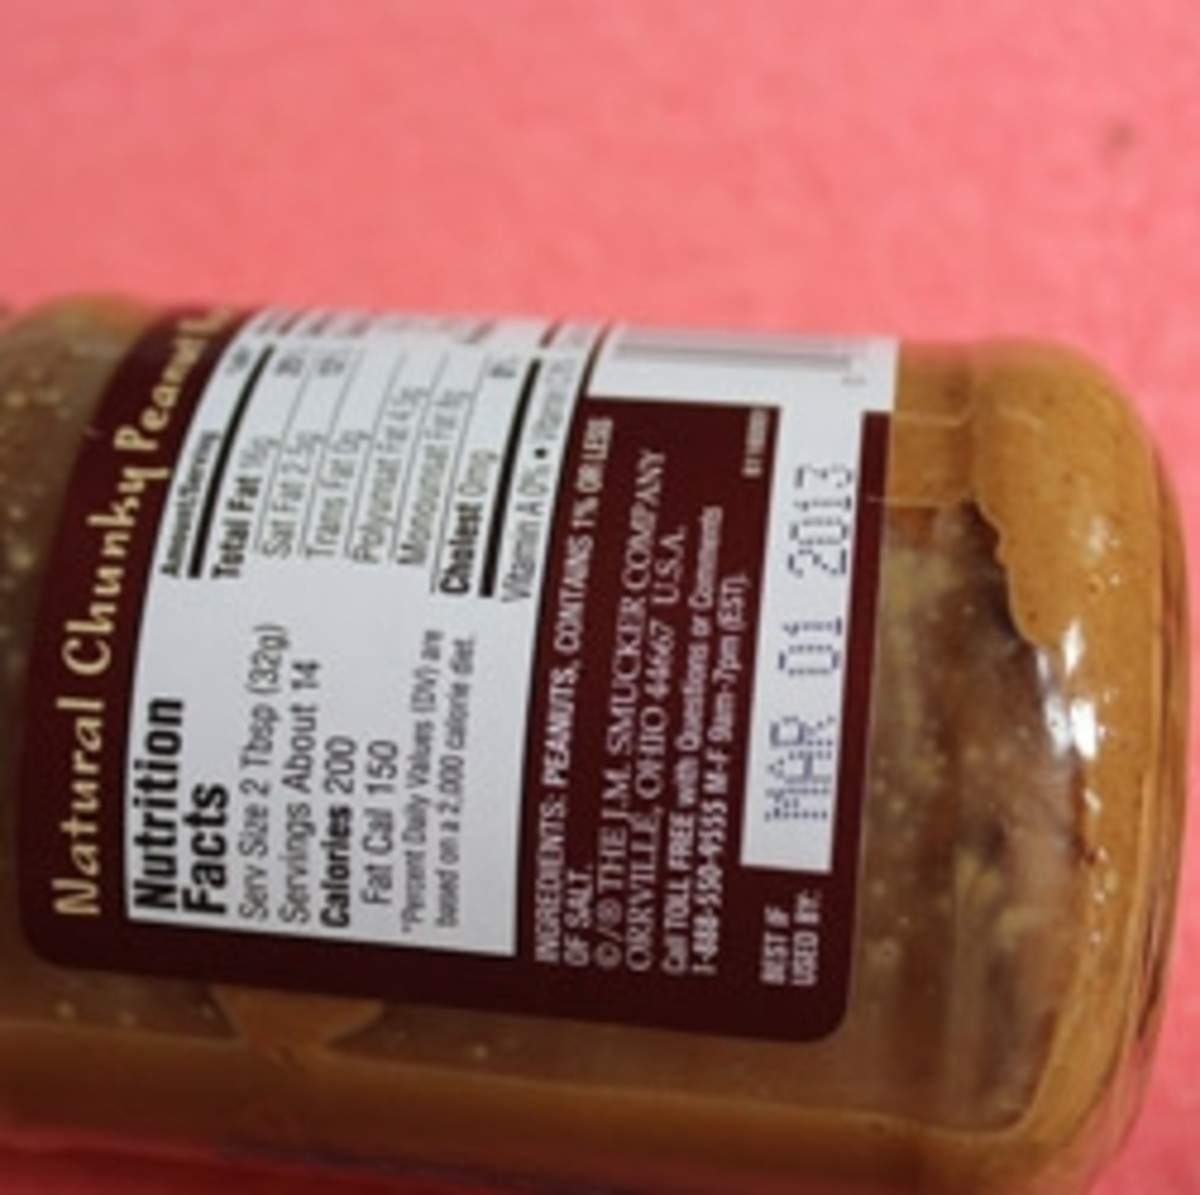 Look at the label and make sure there are only peanuts and a small amount of salt; no other ingredients, especially sugar.